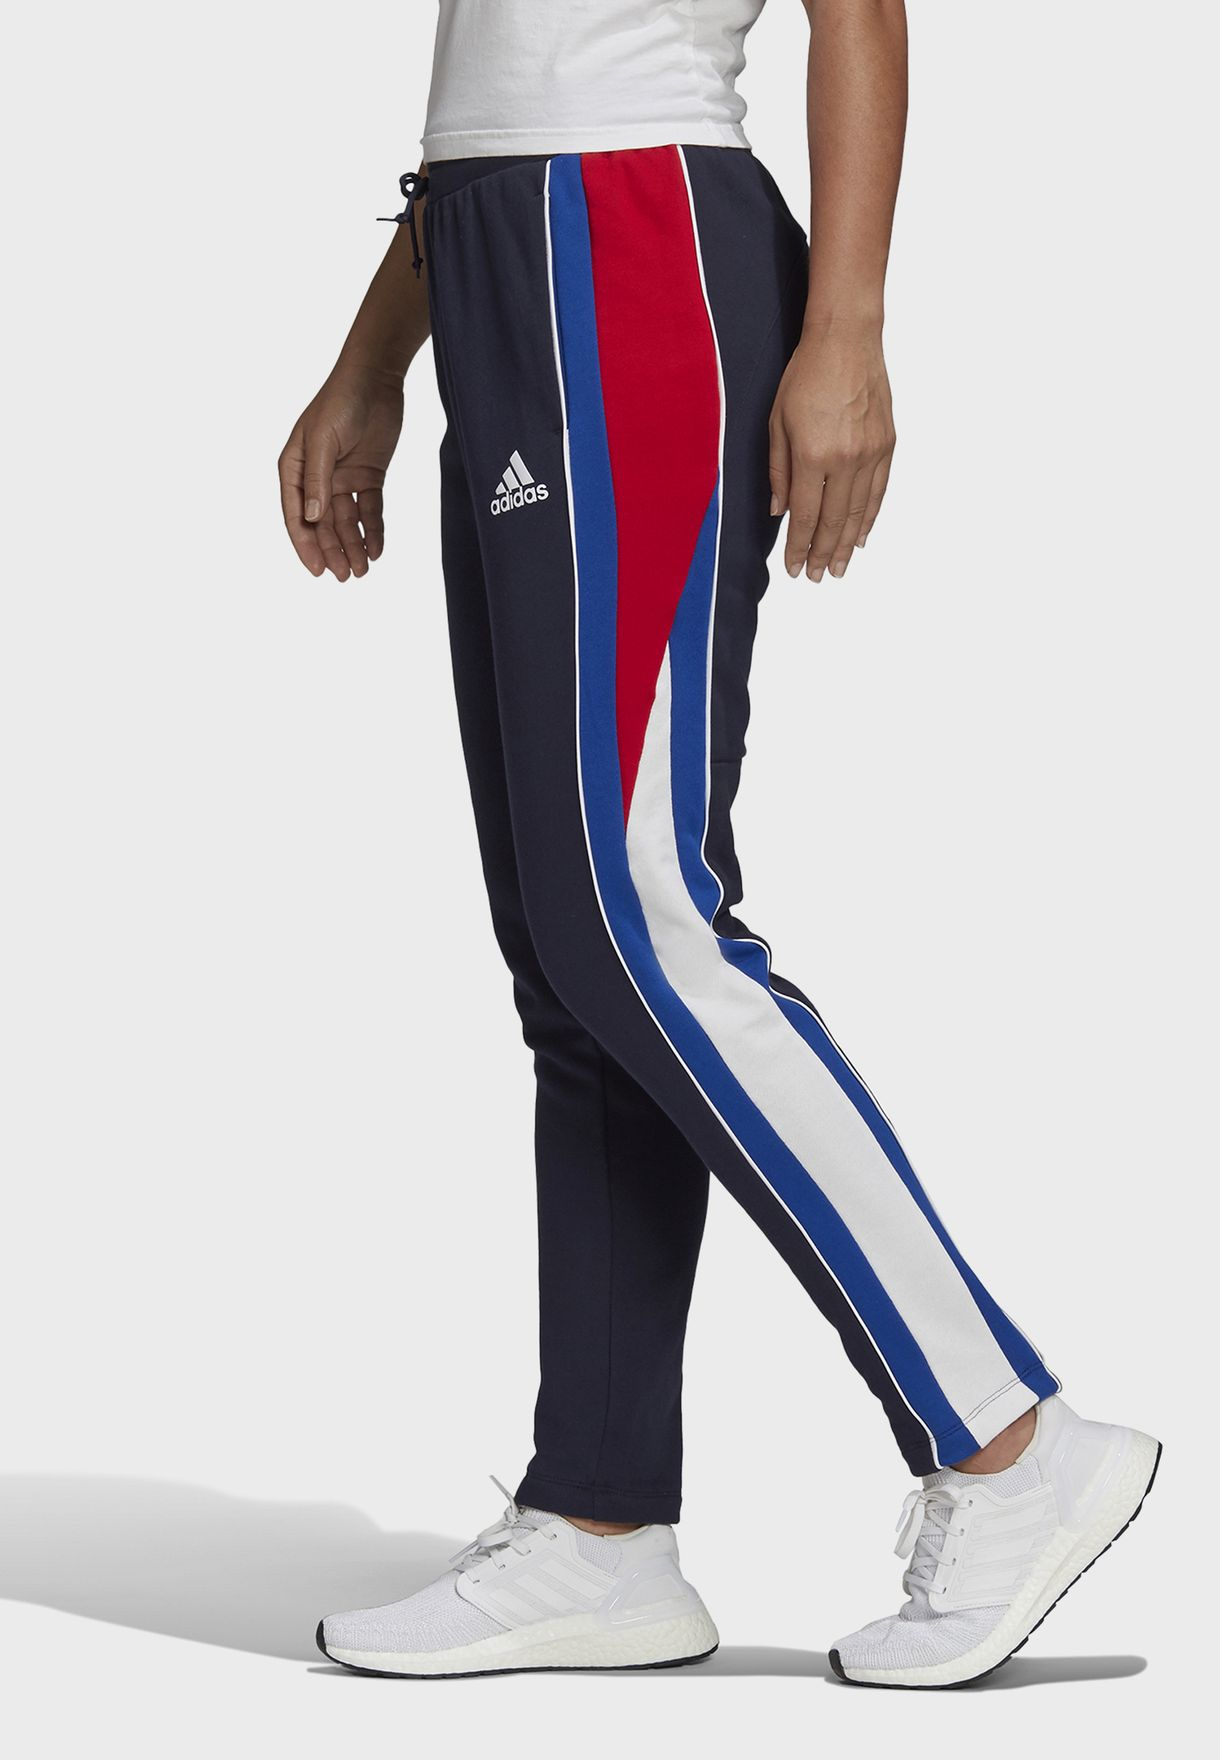 Aac Sweatpants